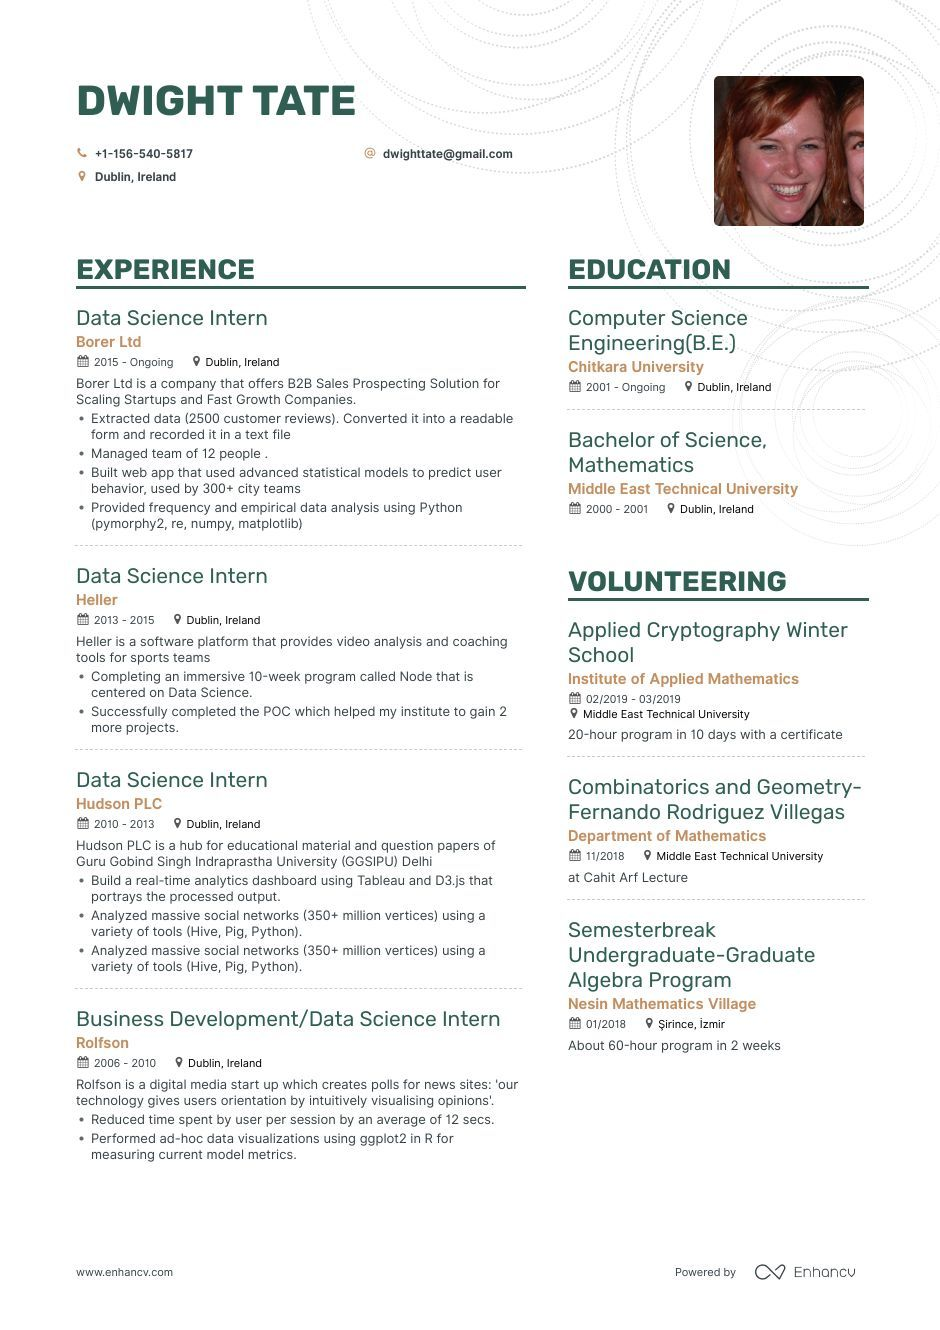 Data Science Intern Resume Example And Guide For 2019 Data Science Resume Examples Science